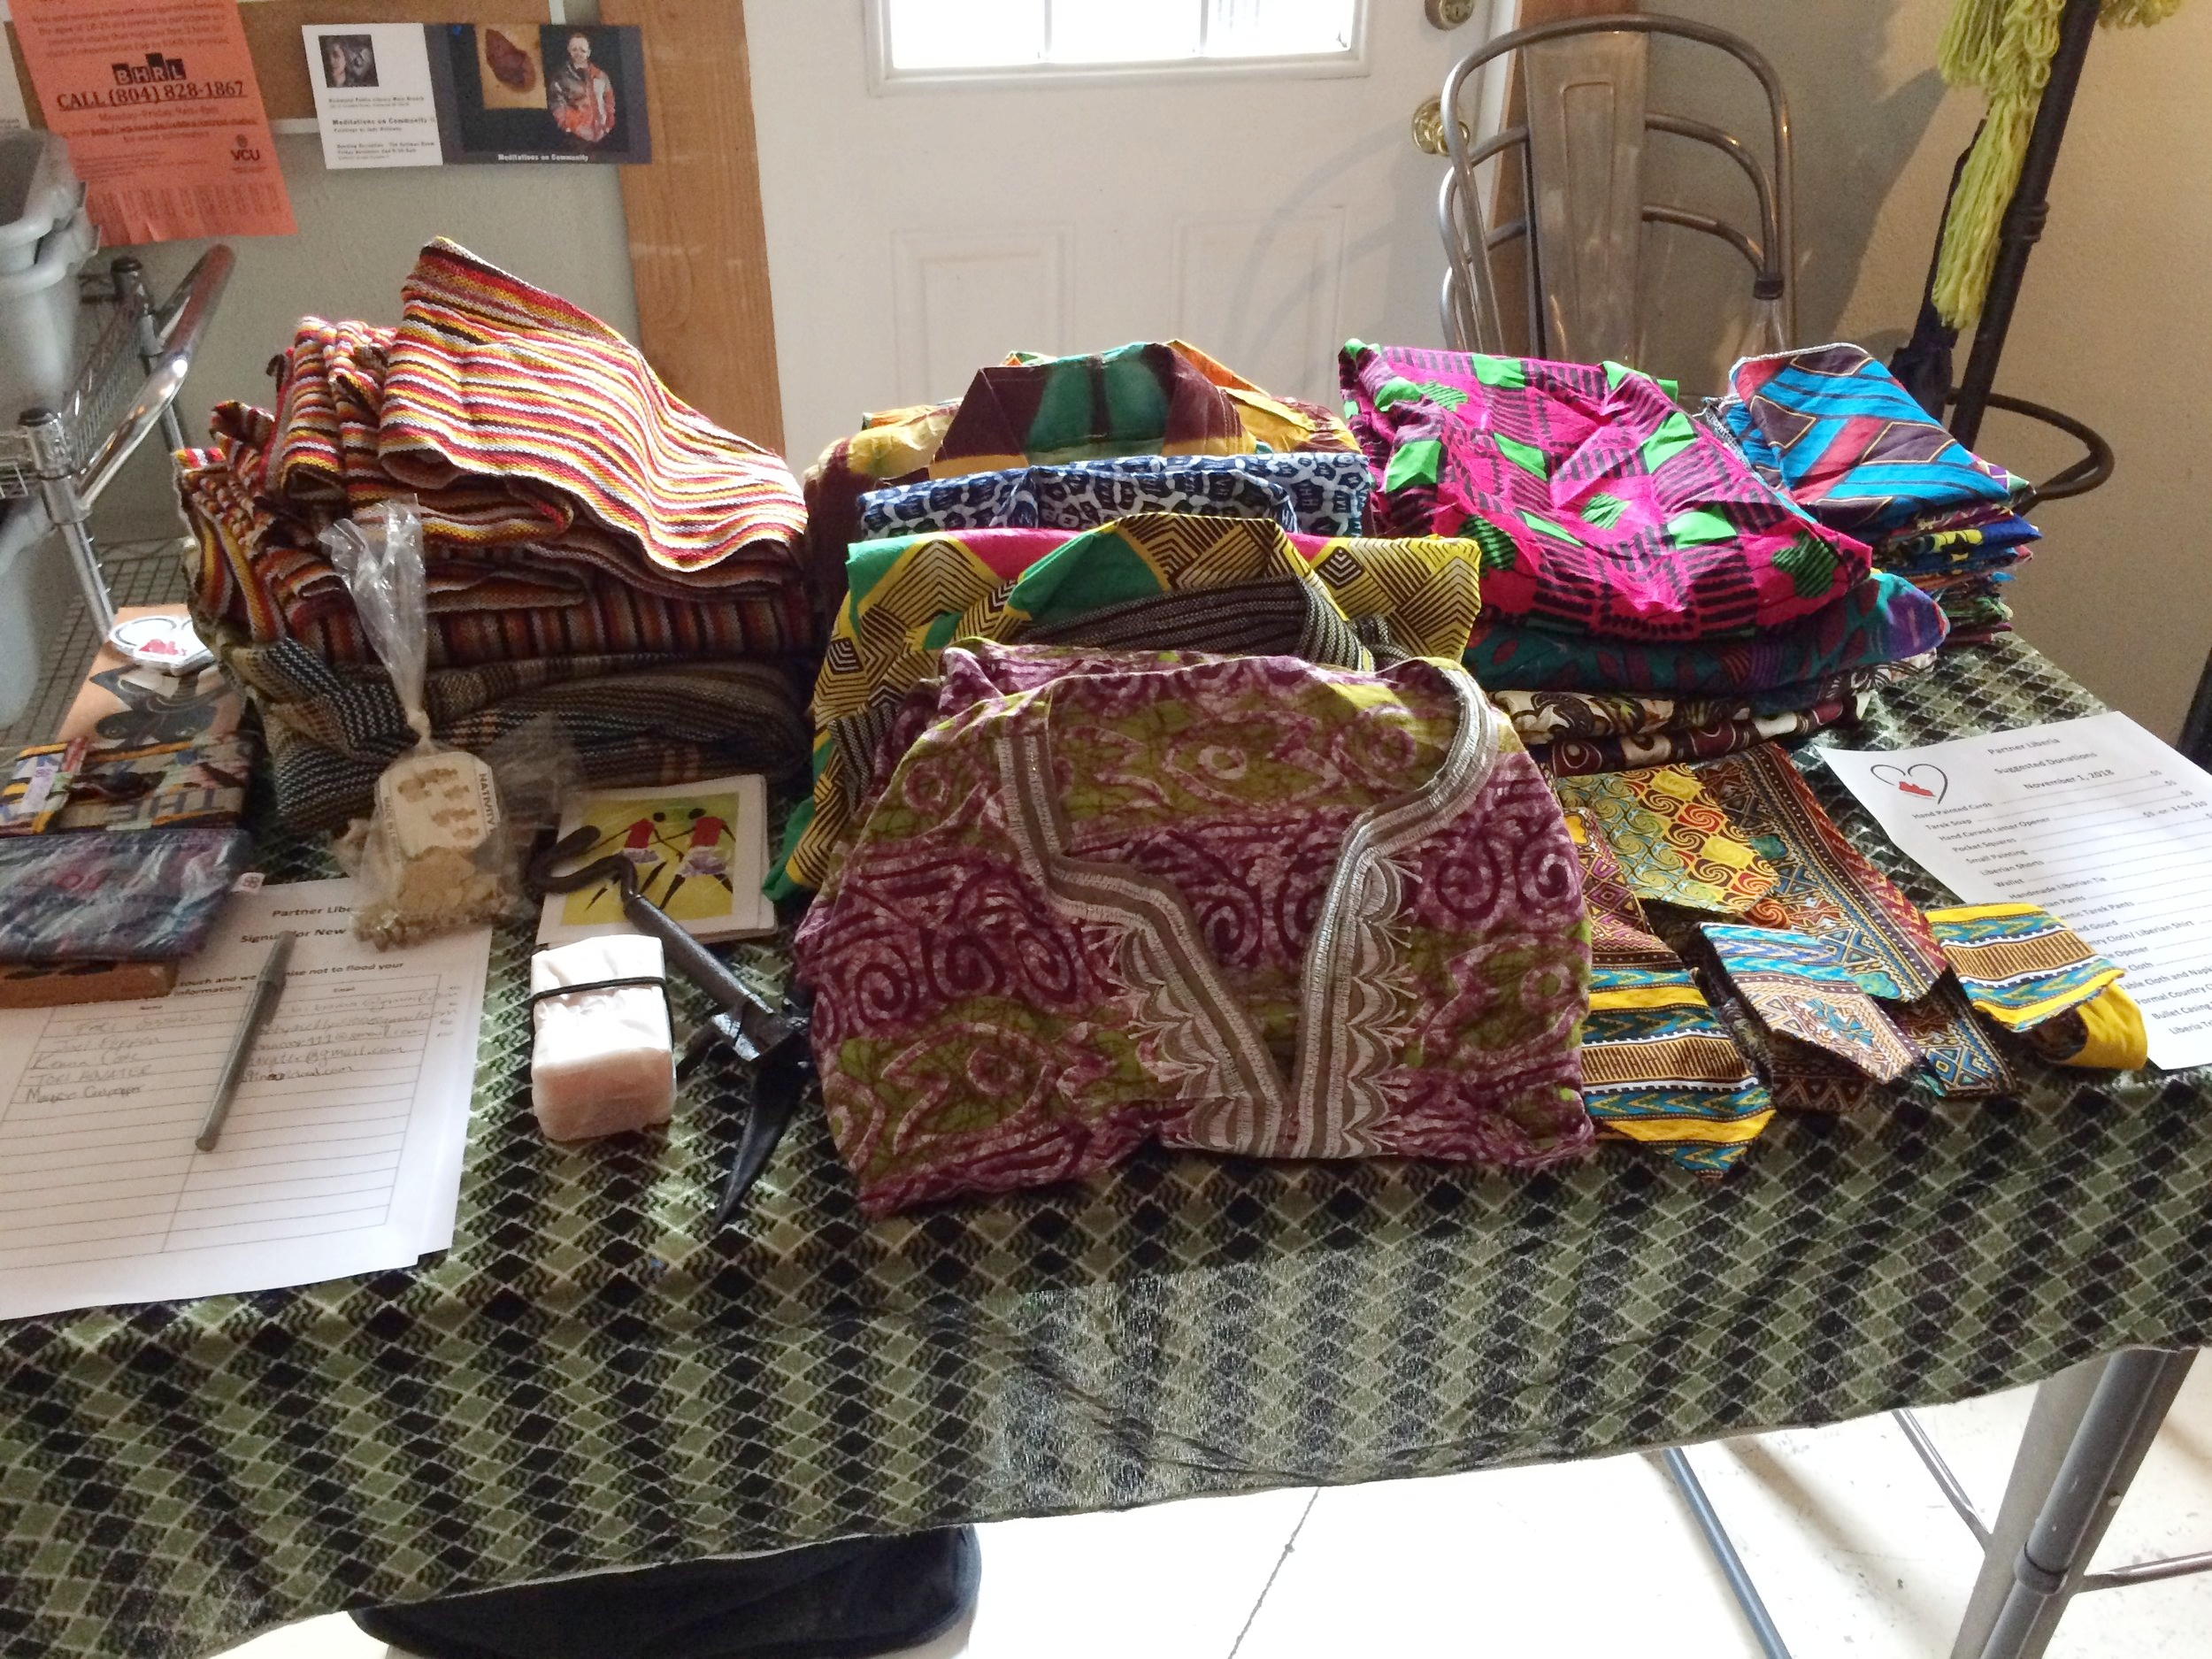 We had many items hand-made in Liberia to demonstrate our programs